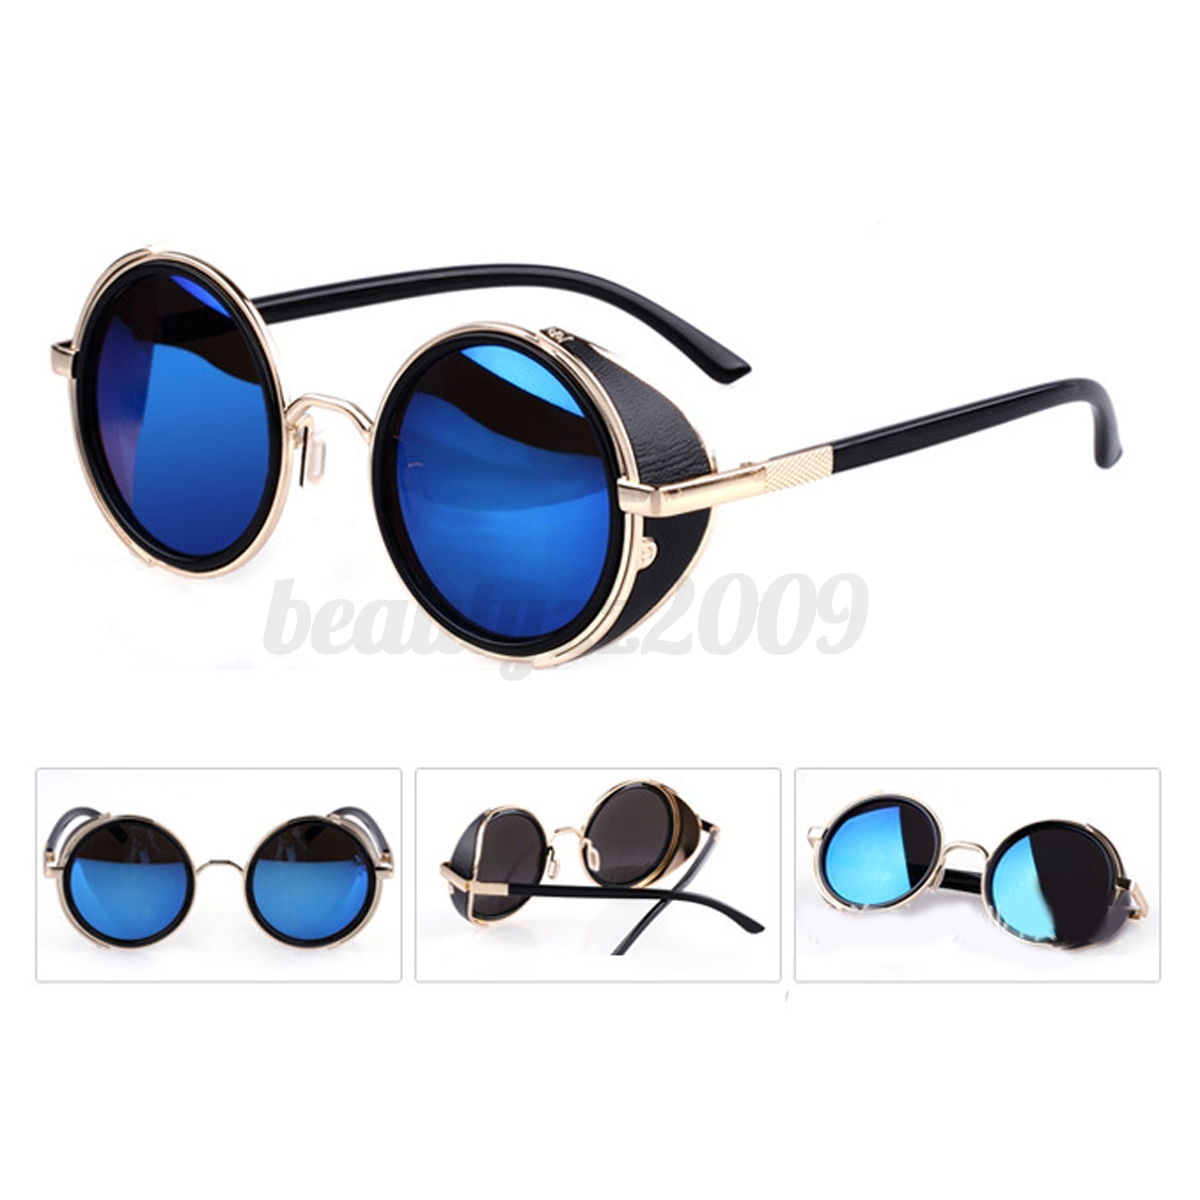 5793346f0c7c Ebay Round Sunglasses With Side Protection